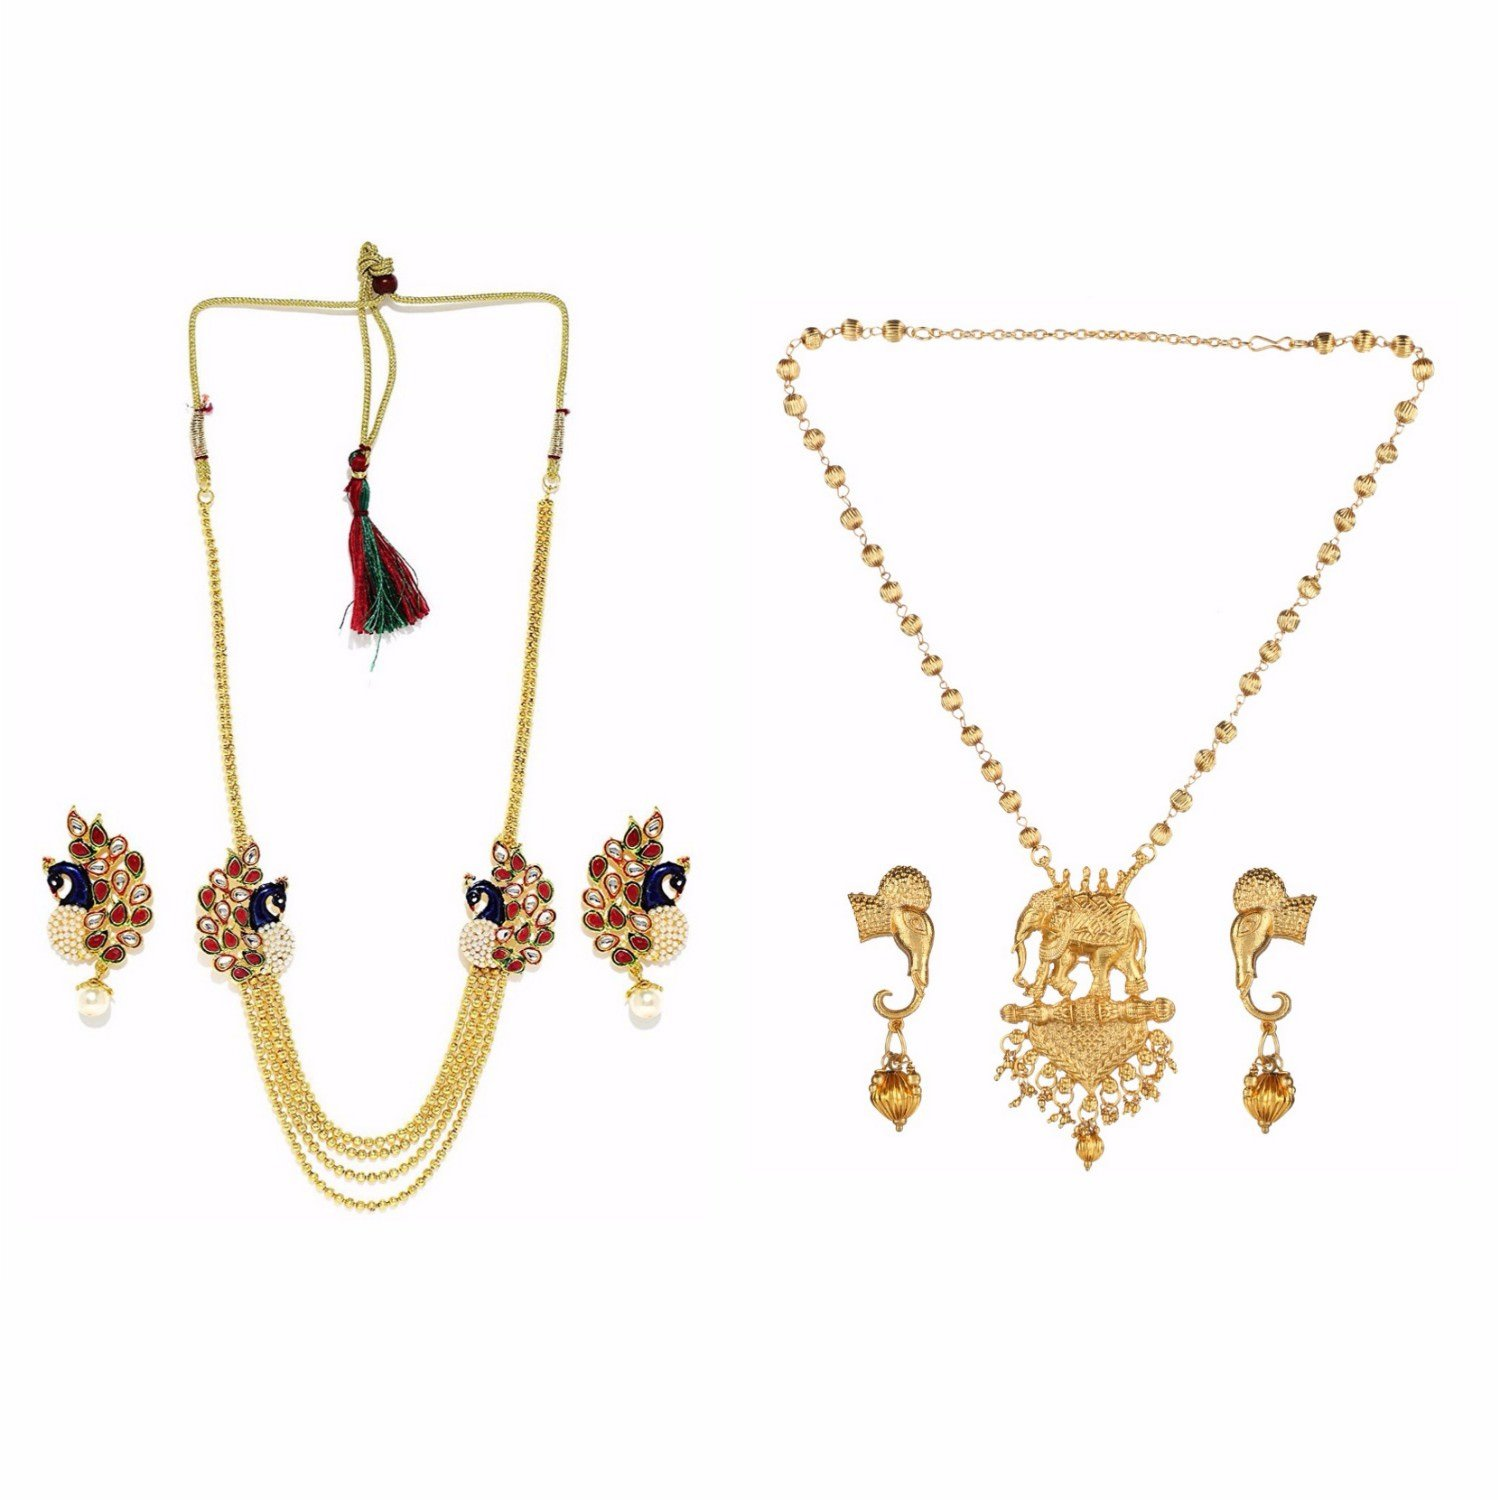 Efulgenz Indian Bollywood Traditional White Red Green Rhinestone Faux Ruby Emerald Bridal Designer Kundan Multistranded Lariat Style Necklace & Earrings Jewelry Set in Antique 18K Gold Tone for Women Archi Collection MNT184MNT186